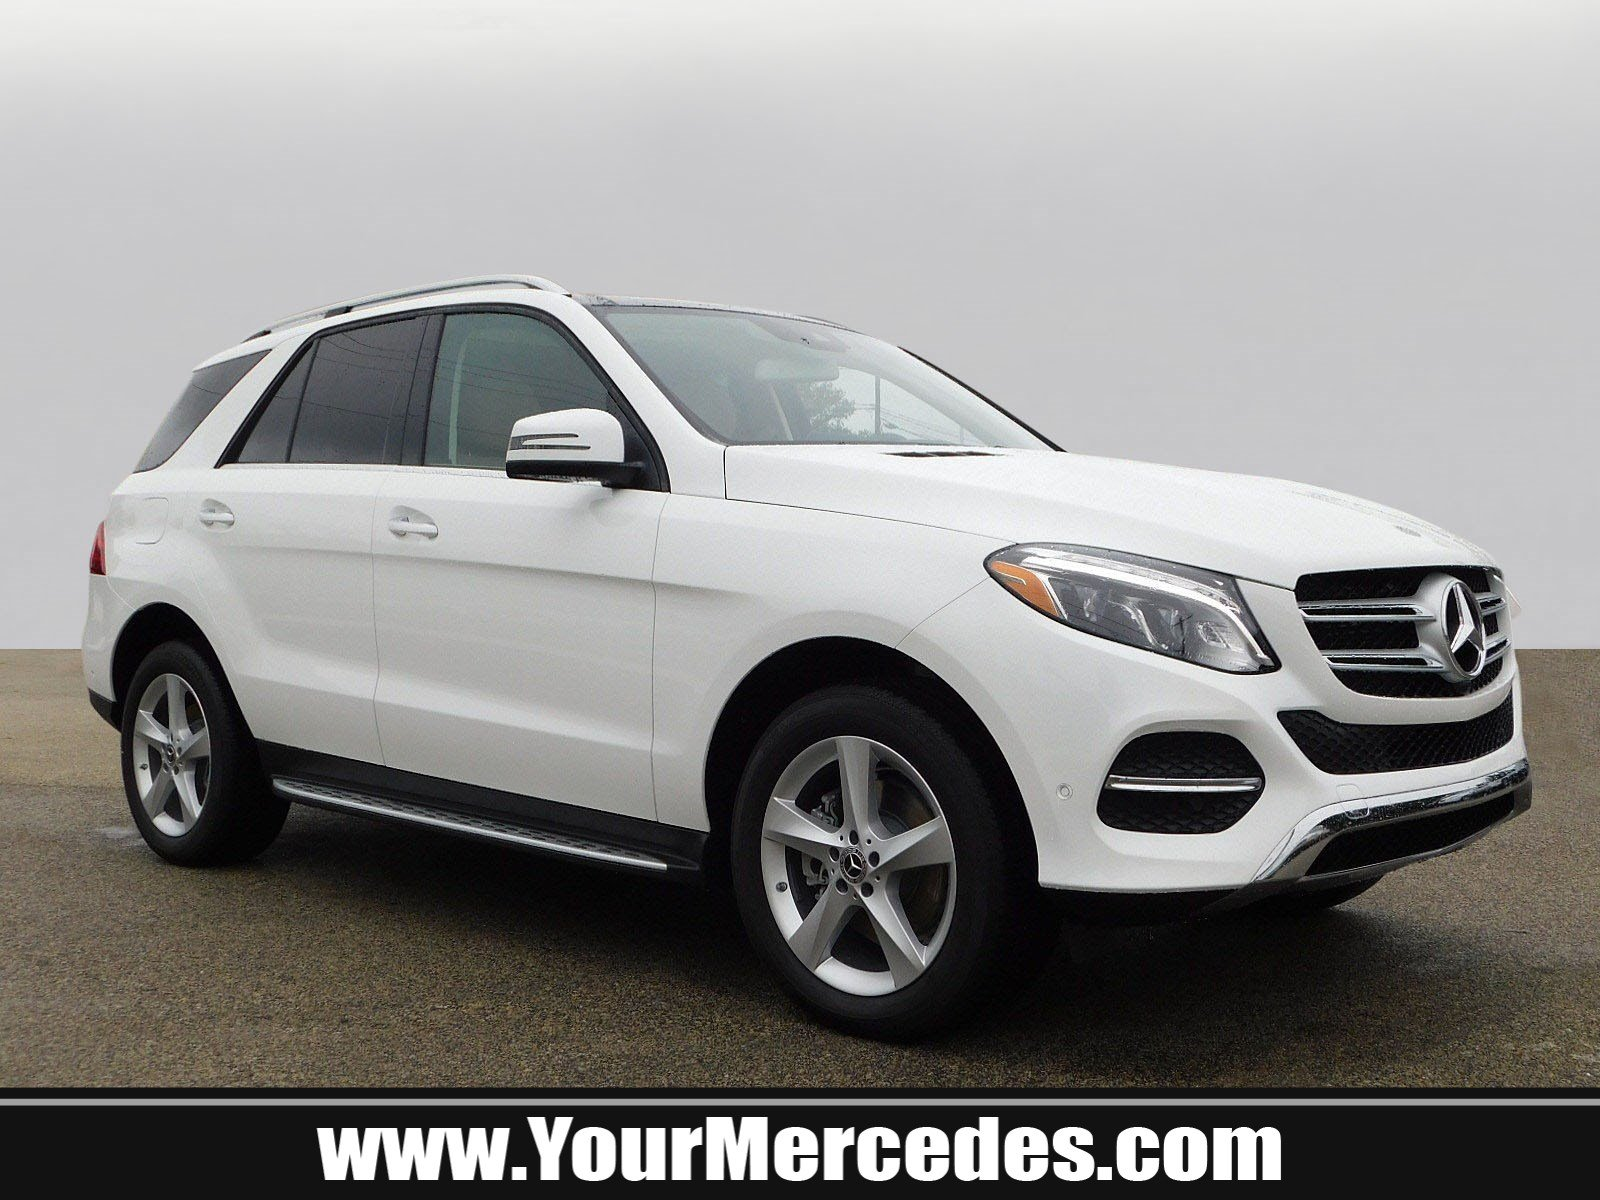 New 2018 Mercedes Benz GLE GLE 350 SUV in Fort Washington JB